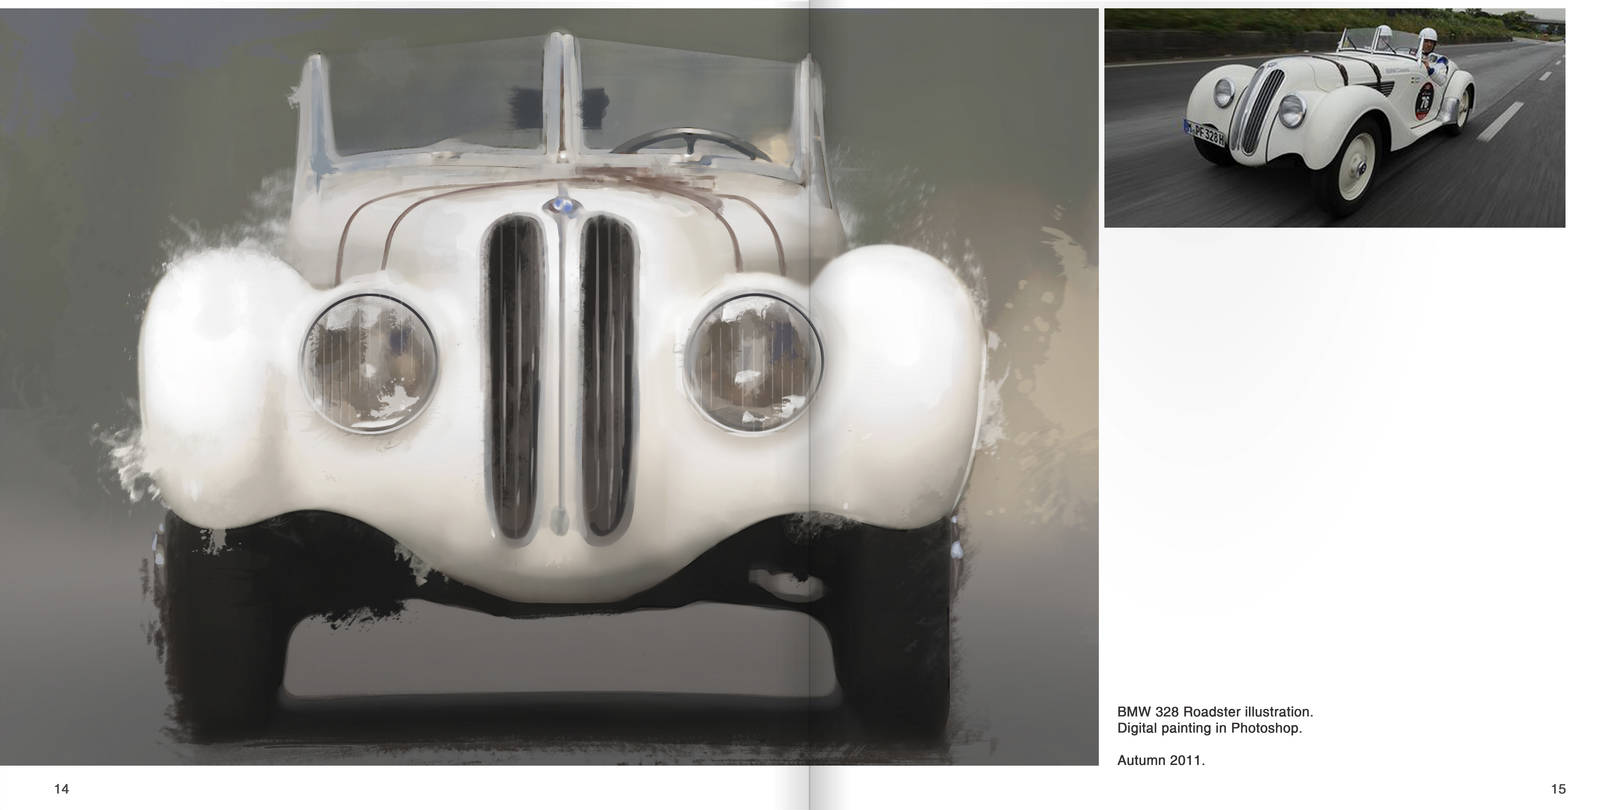 BMW 328 Roadster illustration